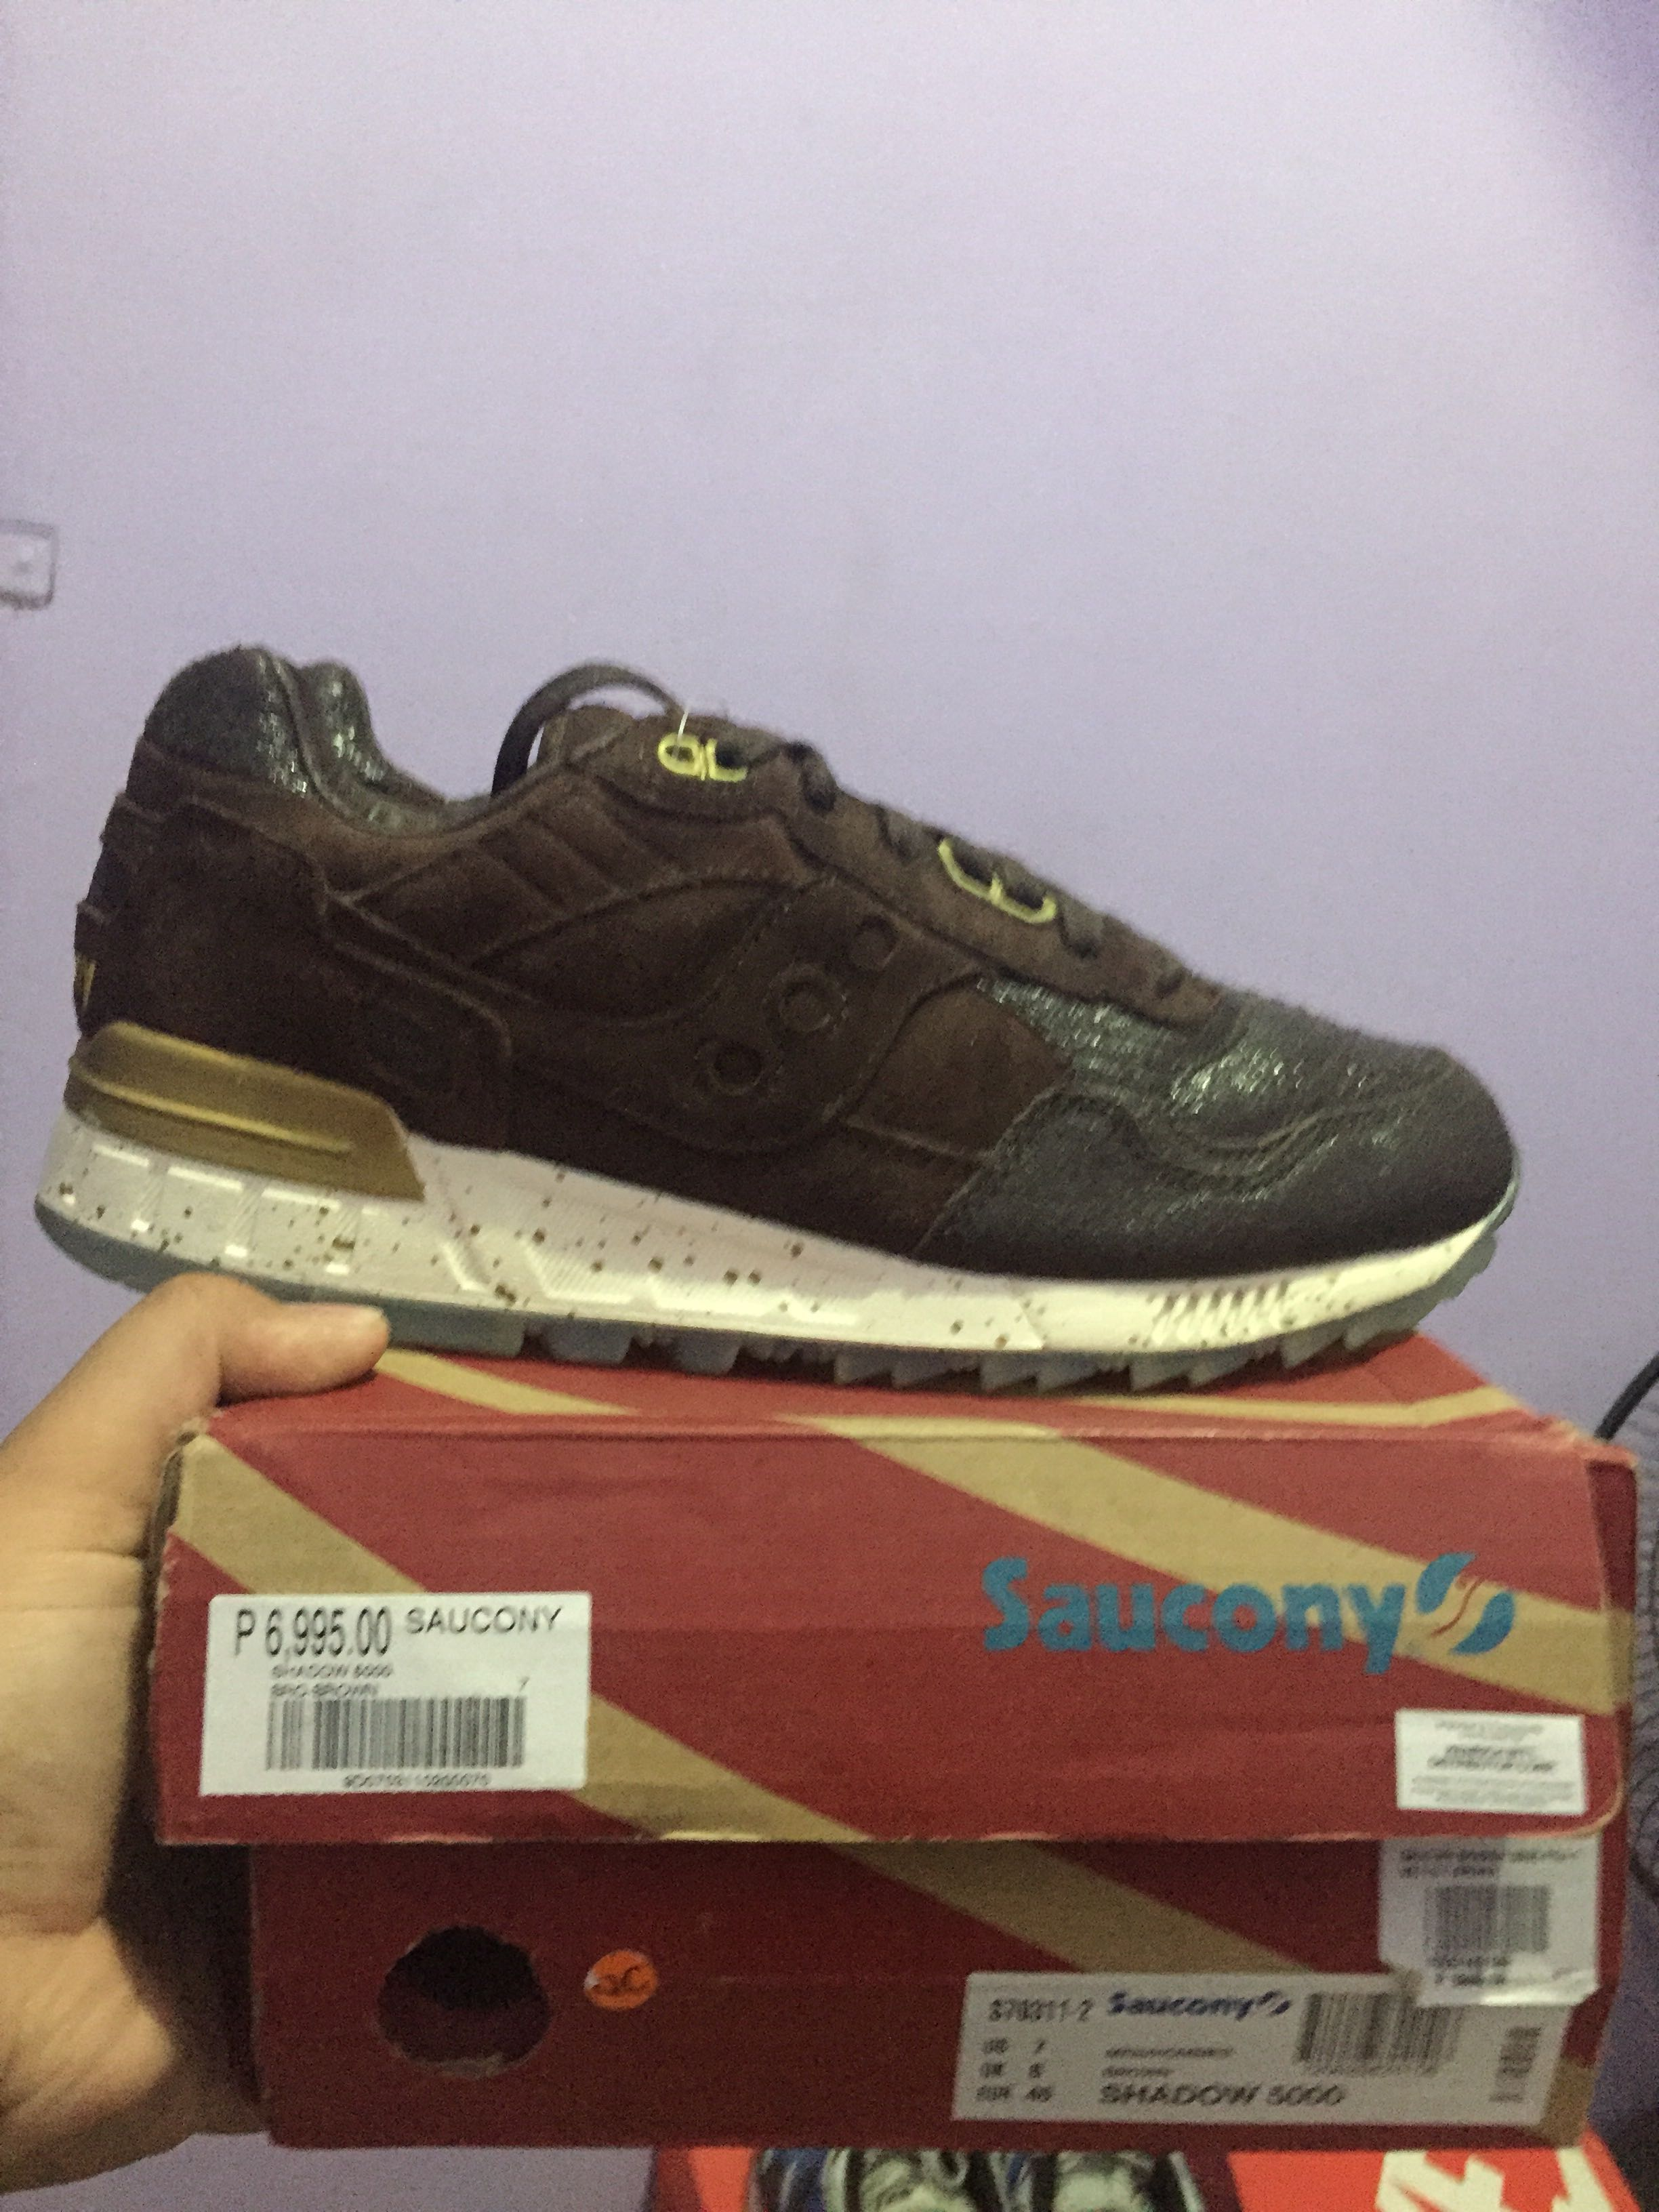 769deb20a62 Saucony Shadow 5000. Choco pack